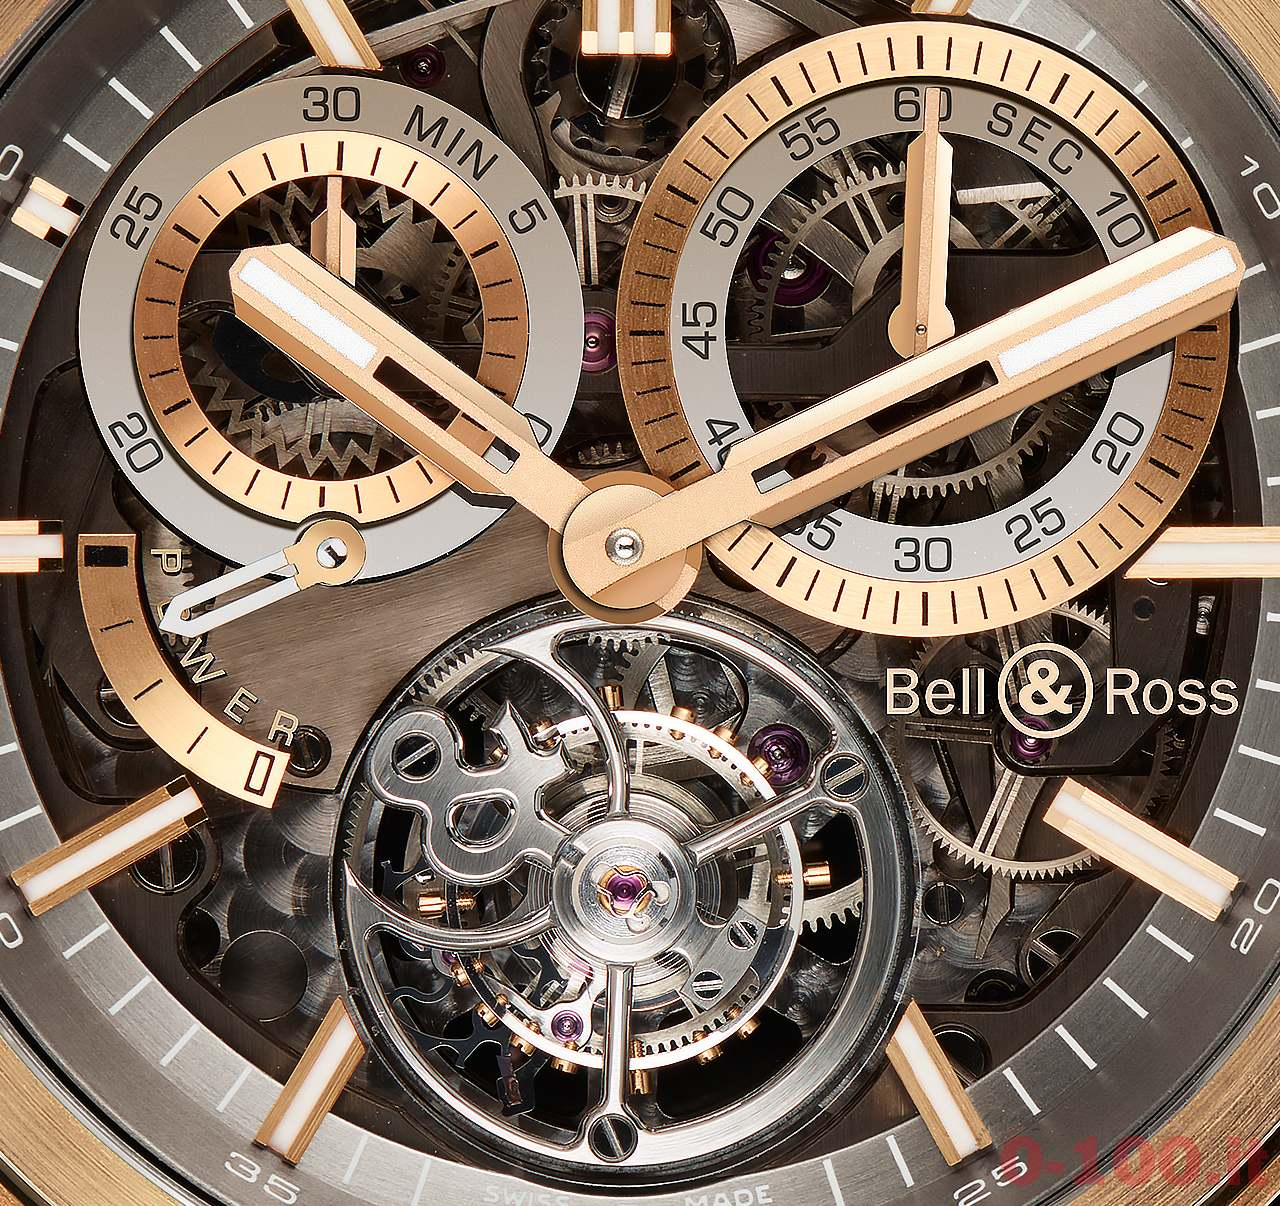 bell-ross-br-x1-chronograph-tourbillon-limited-edition-prezzo-price_0-1003